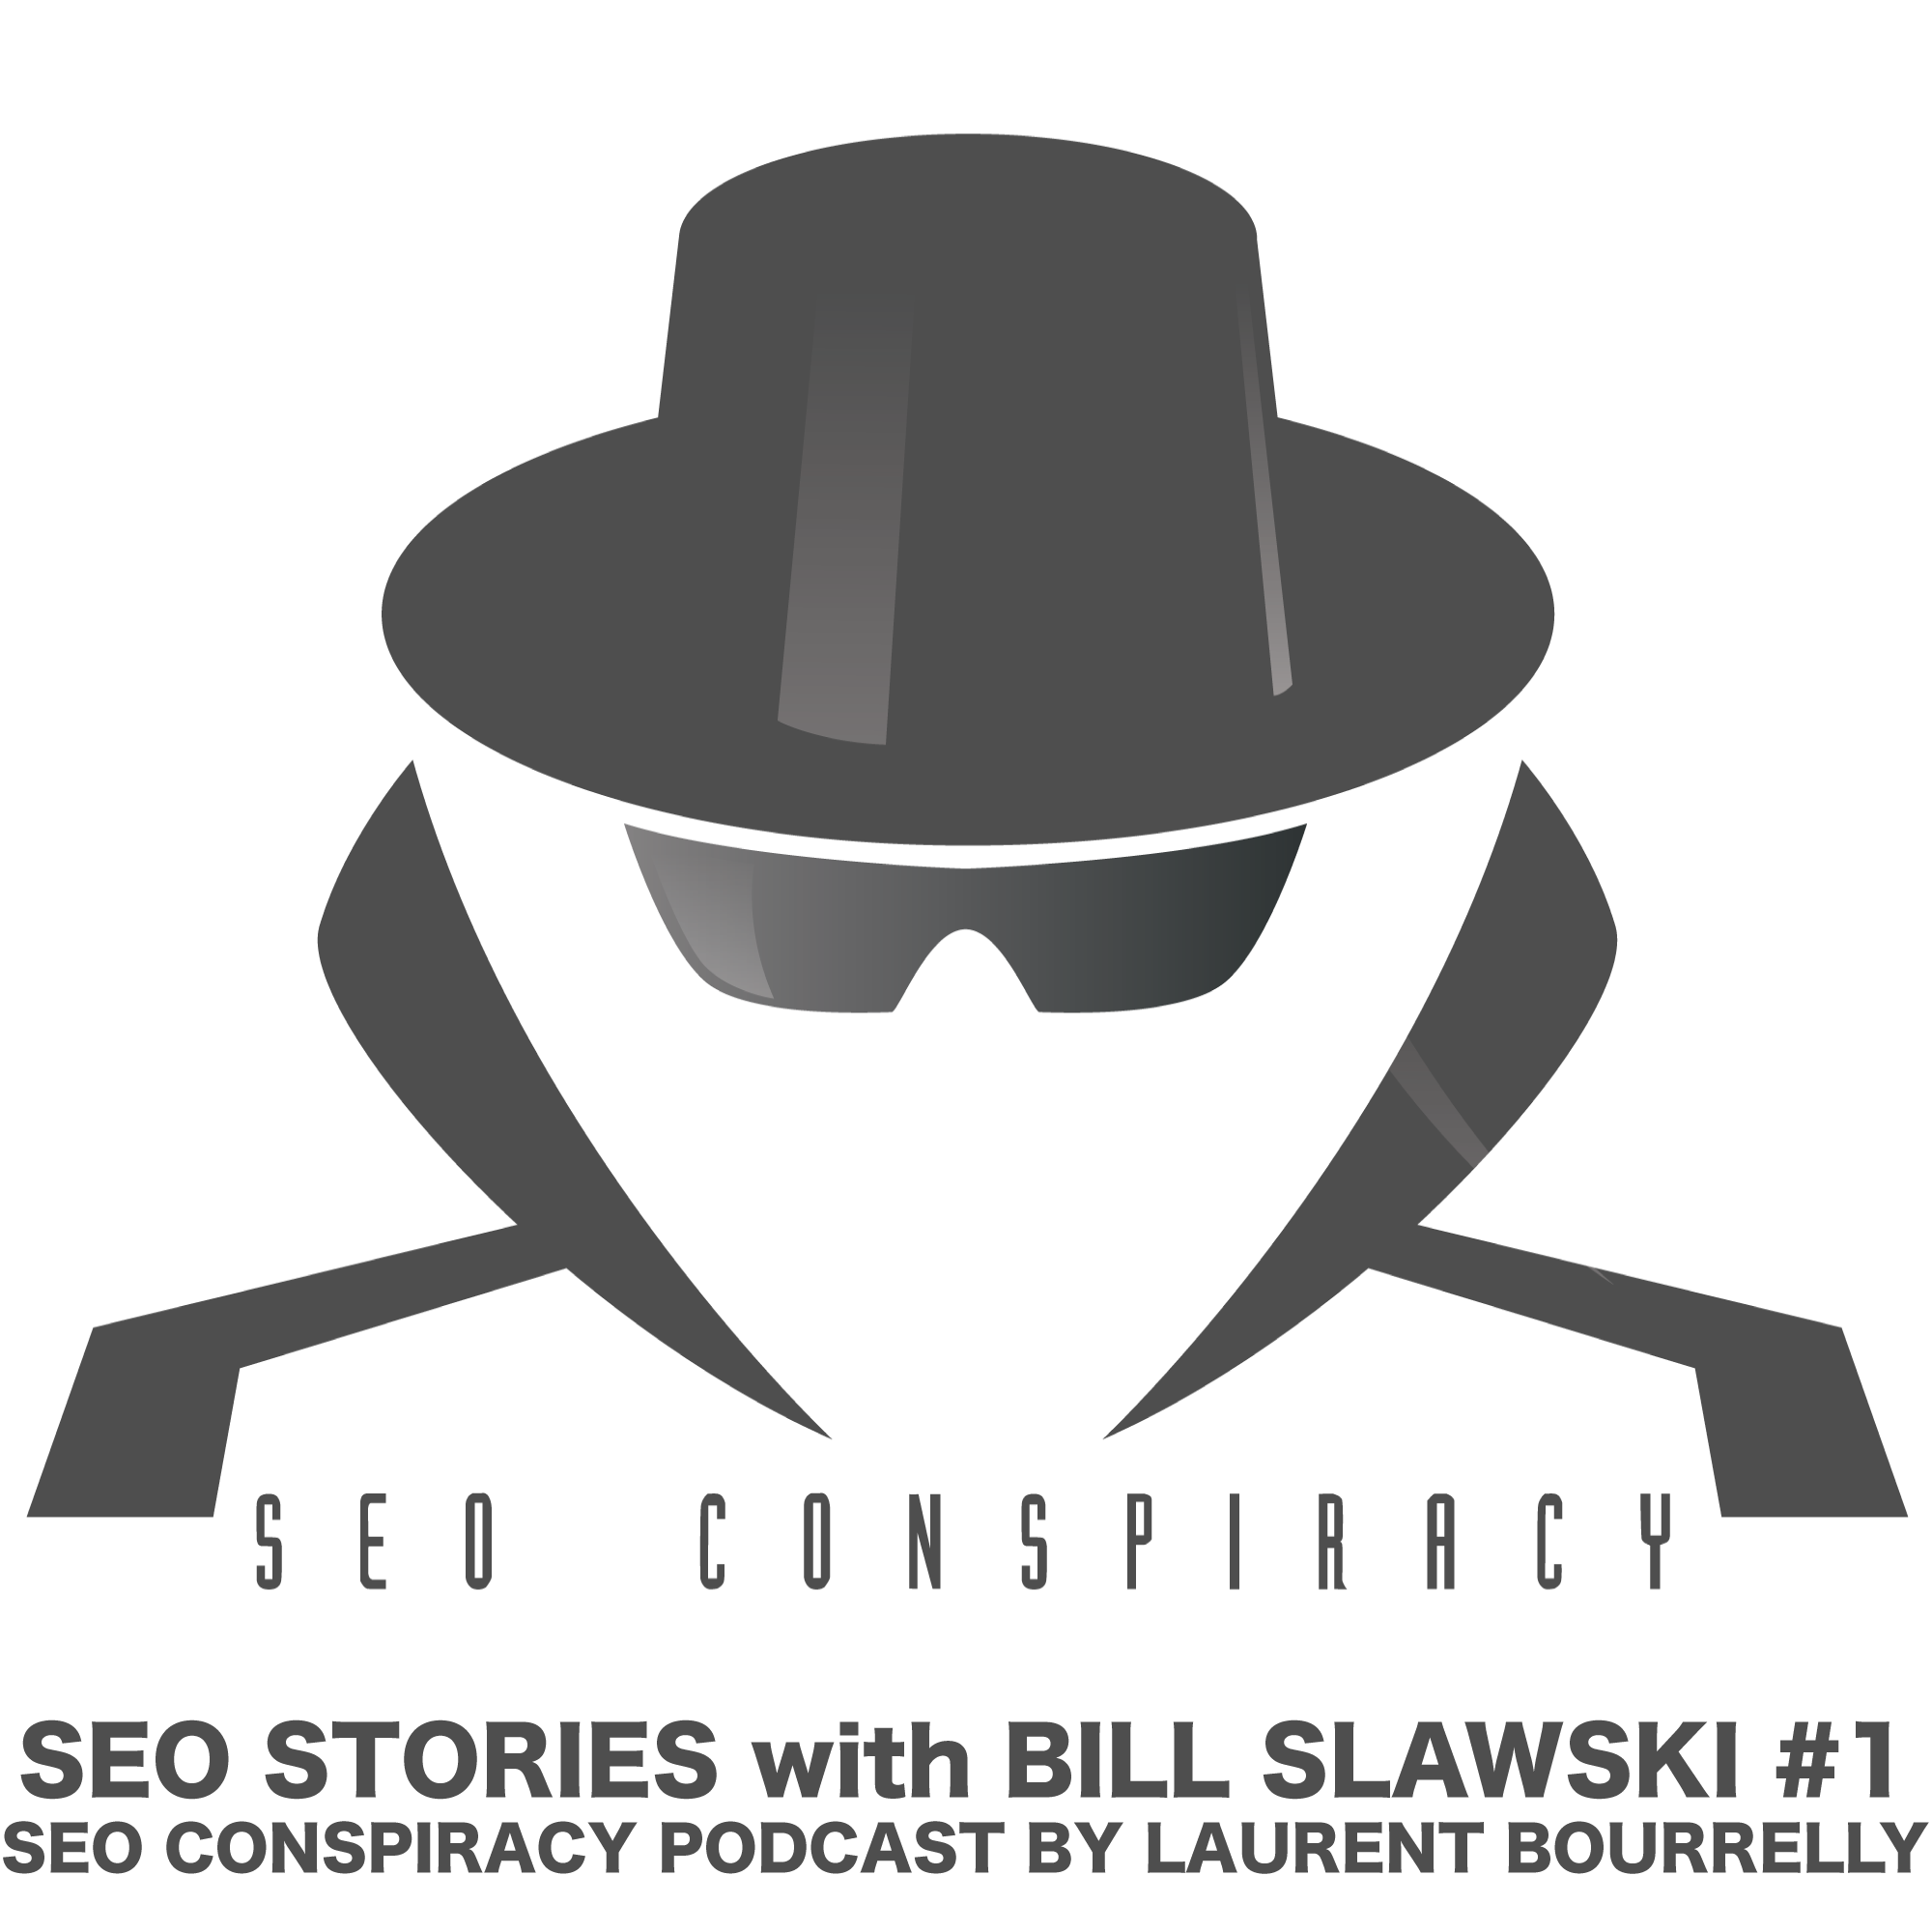 Pagerank and Reasonable Surfer : understand how does Google work with Bill Slawski